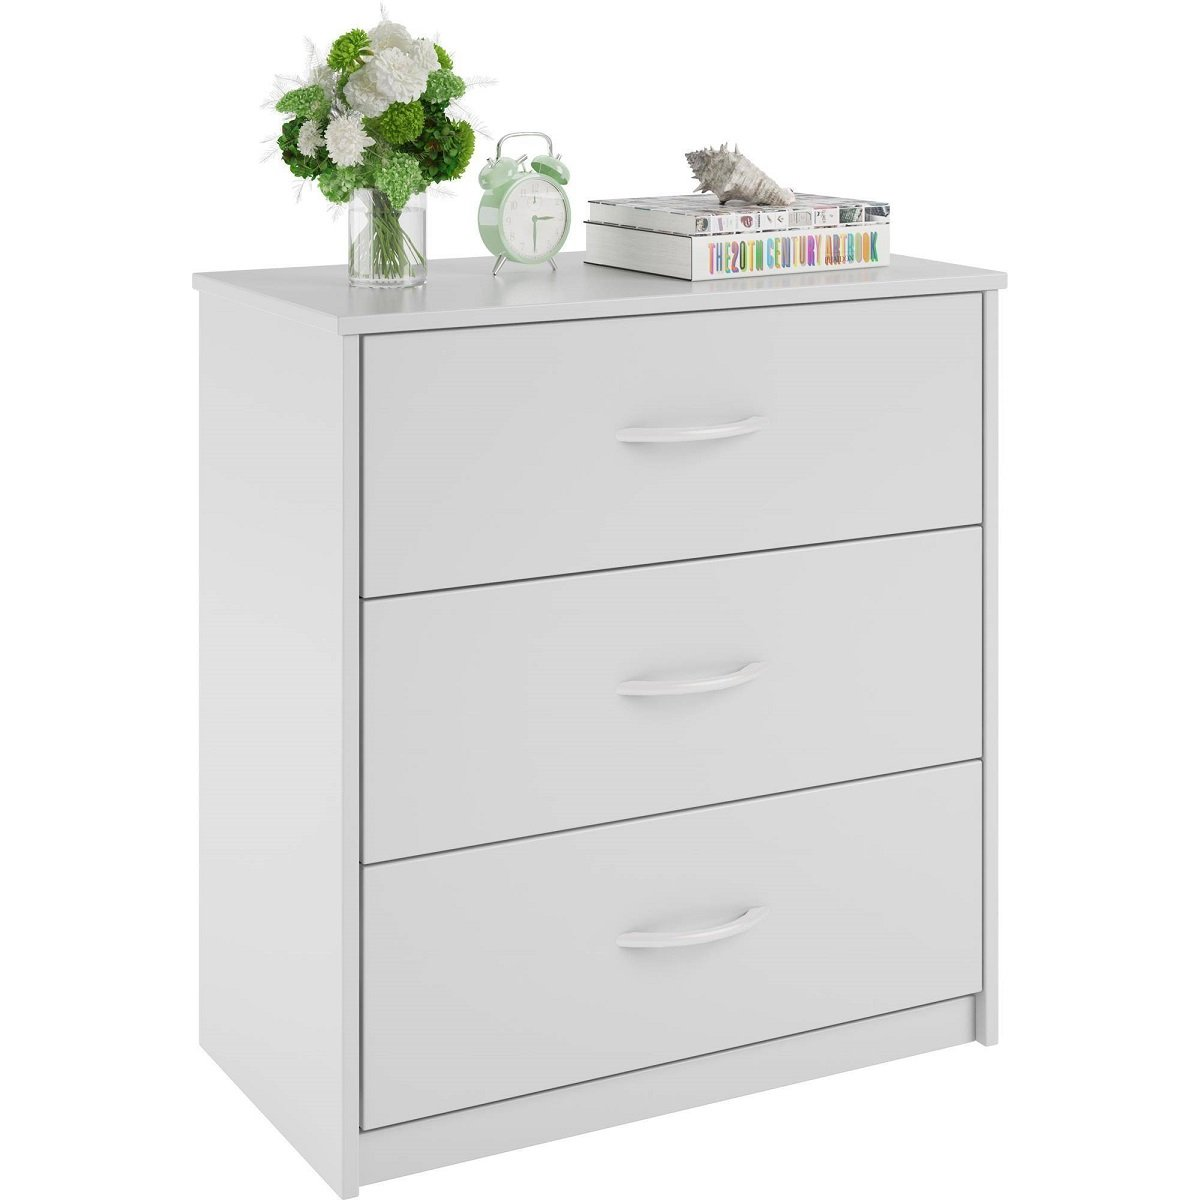 Mainstays 3-Drawer Dresser 3 easy-glide drawers (White) by Mainstay* (Image #3)